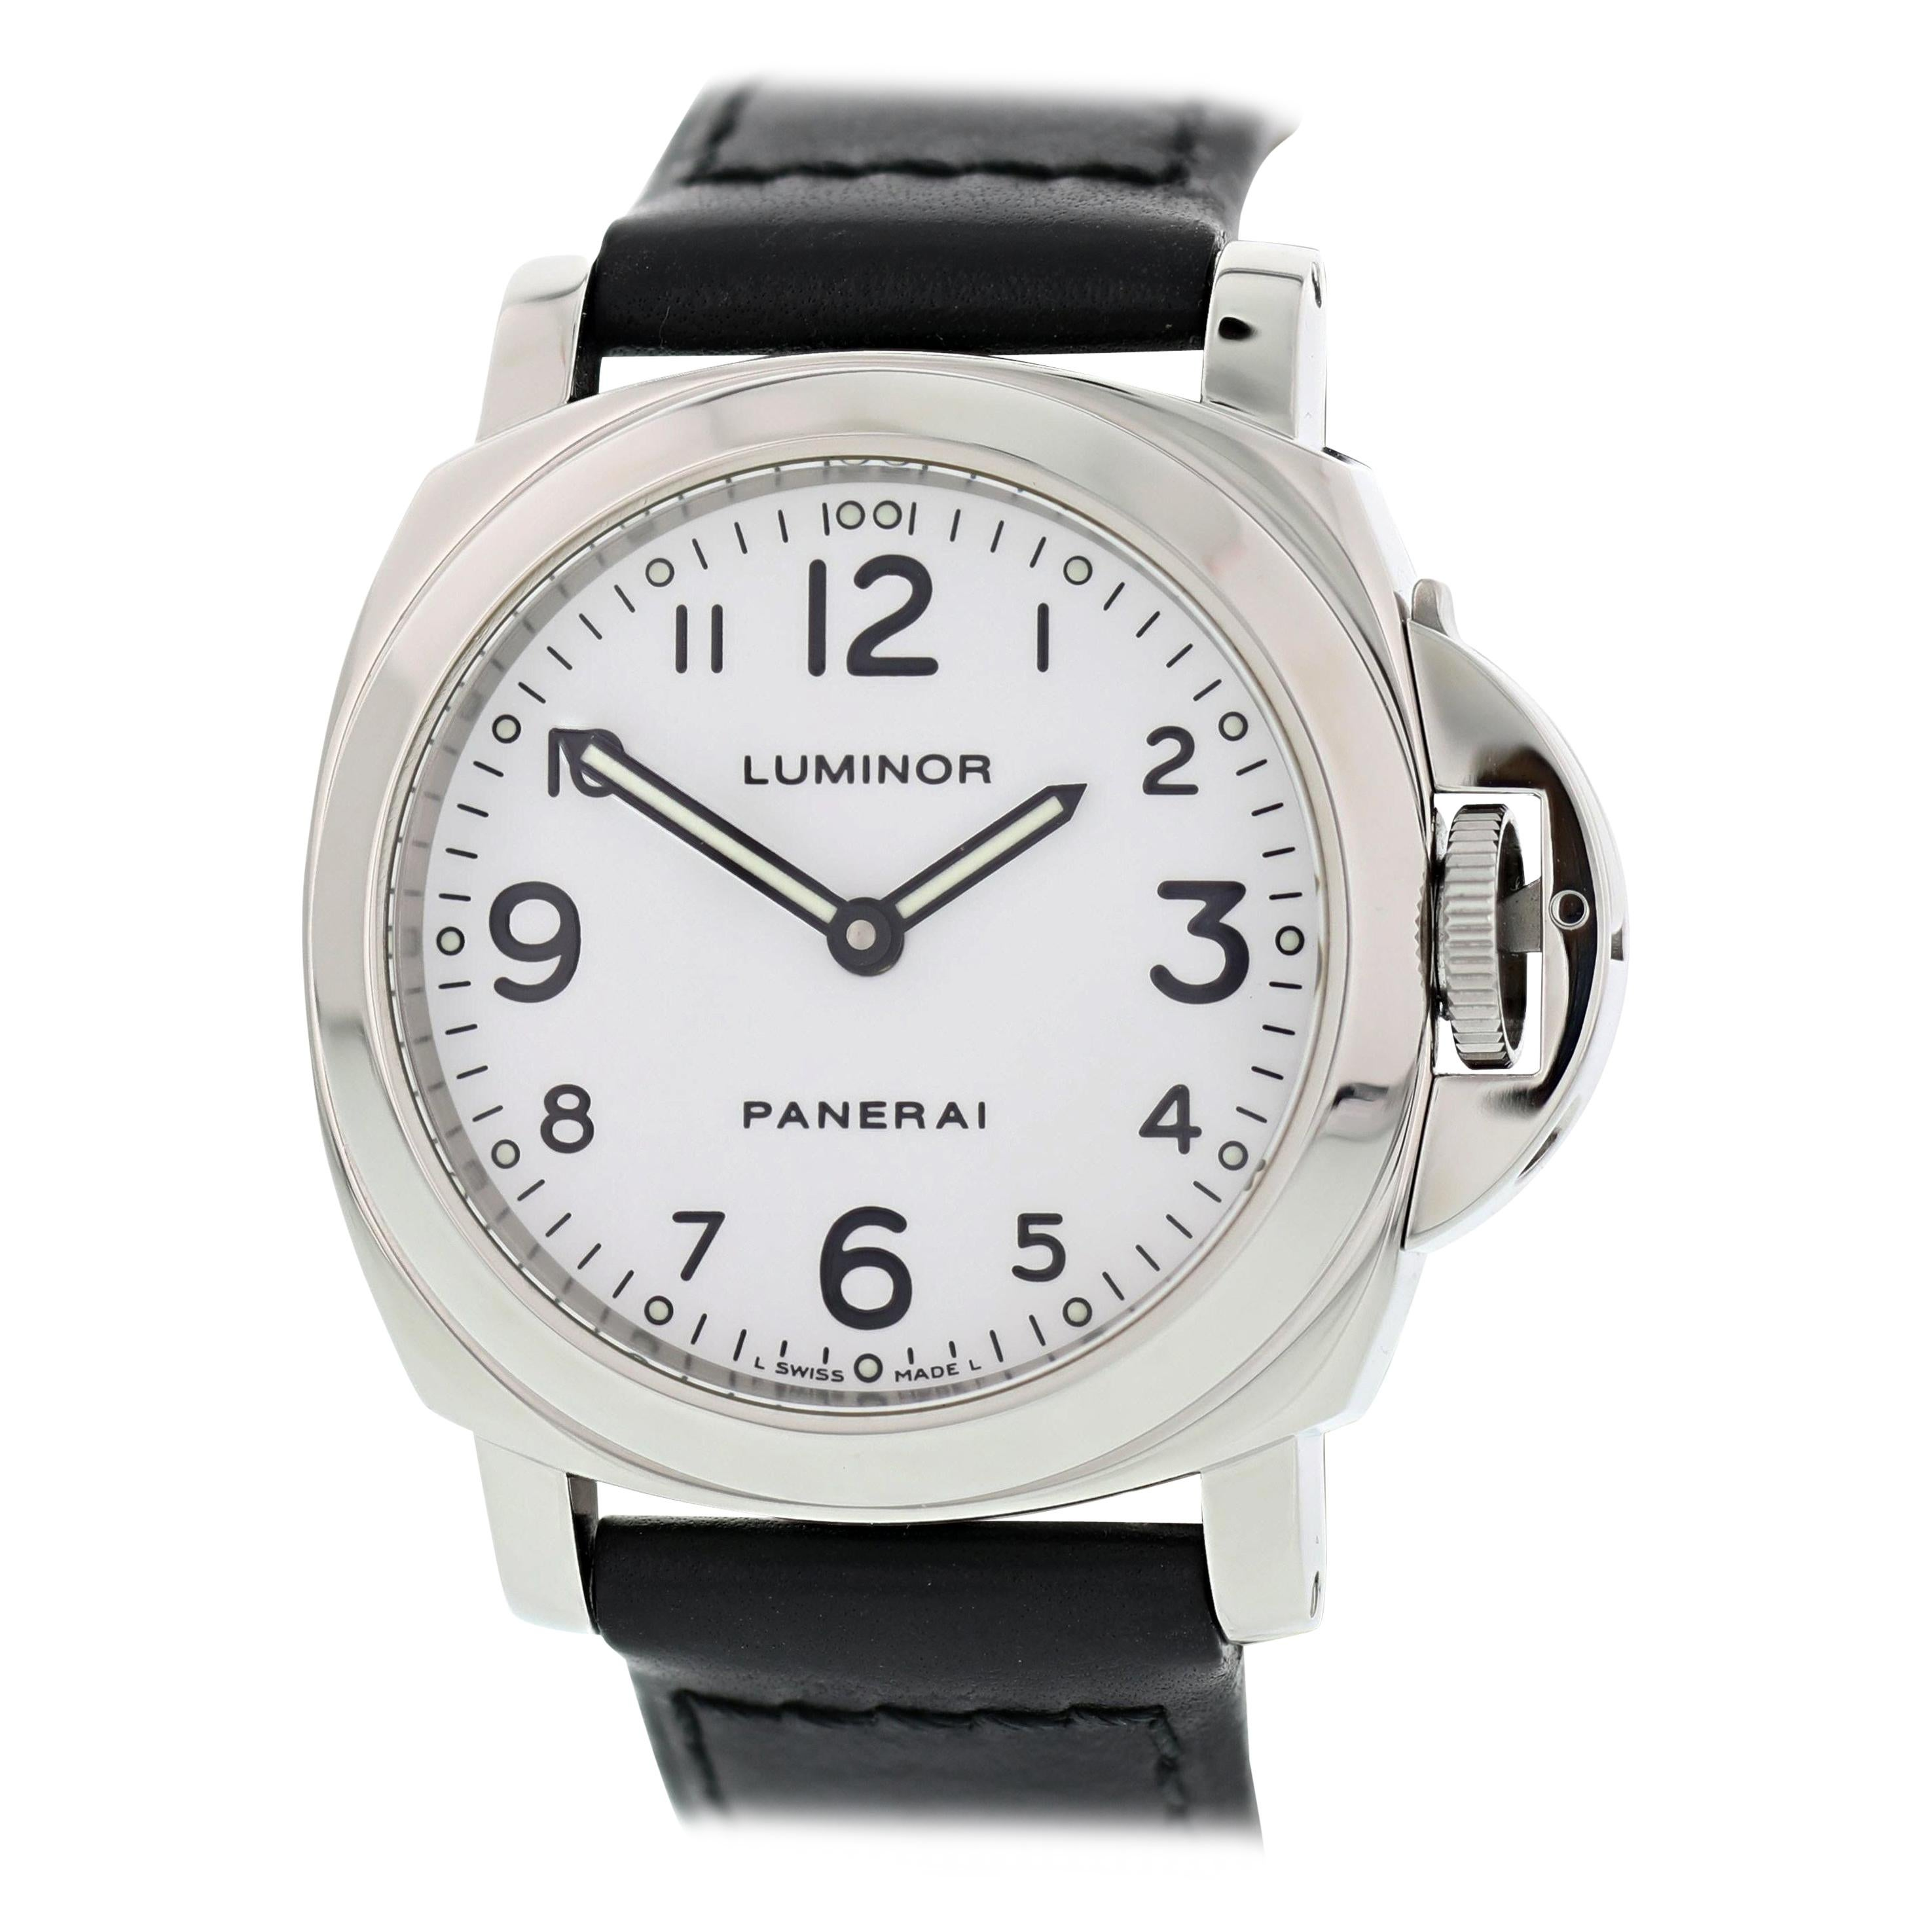 Leather Wrist Watches - 2306 For Sale on 1stdibs